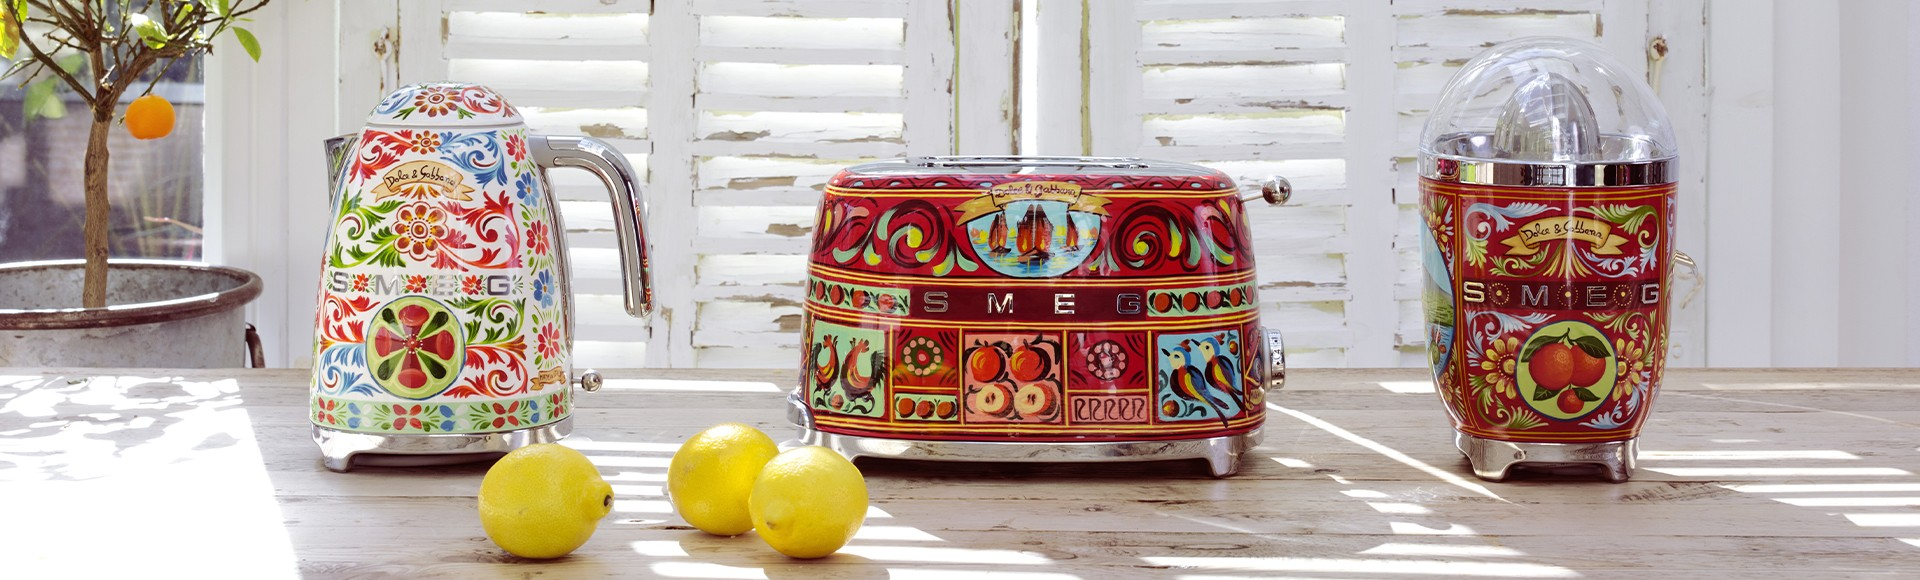 Sicily is my love Smeg eDolce&Gabbana